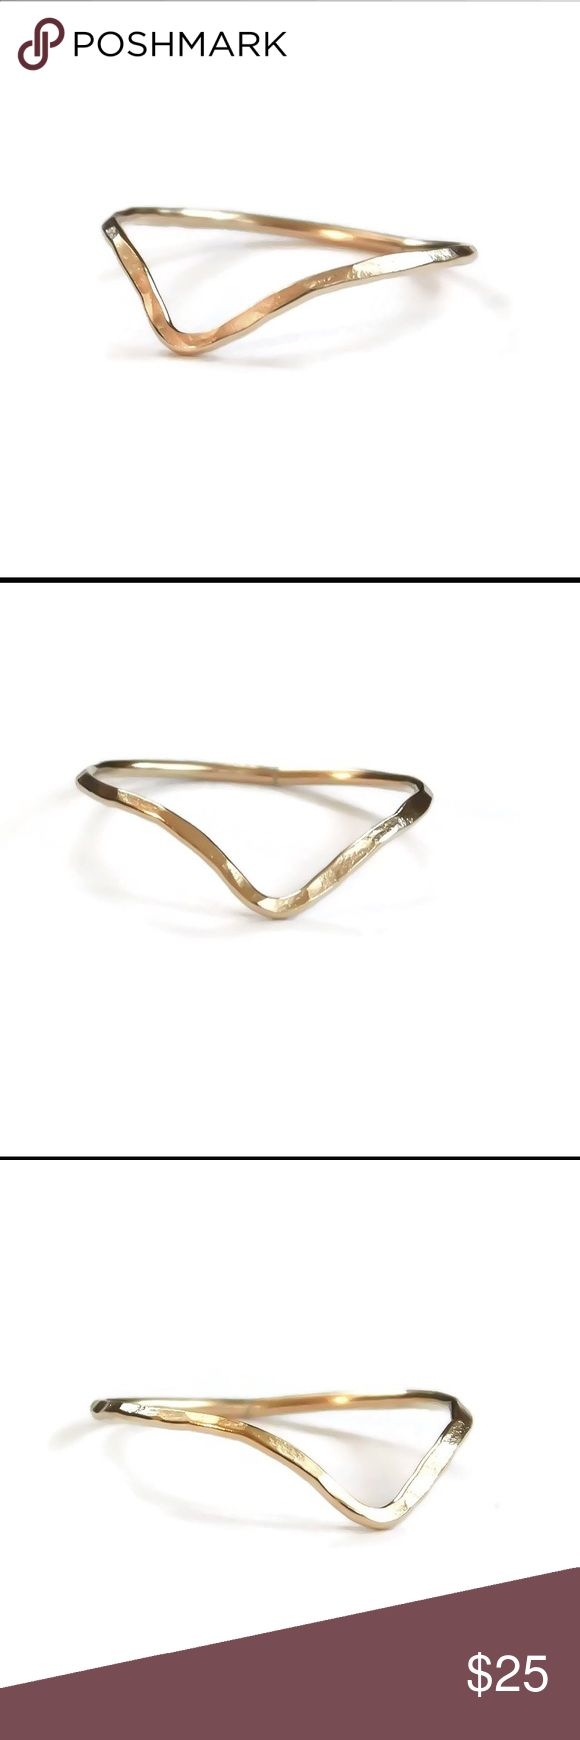 Gold chevron ring A 14k yellow gold filled hammered chevron ring. Can be worn as either a Midi/knuckle, thumb, or ring for any finger. Available in any size 2-13. Posh rules only, no trades, no PayPal, no lowball offers. nejd Jewelry Rings